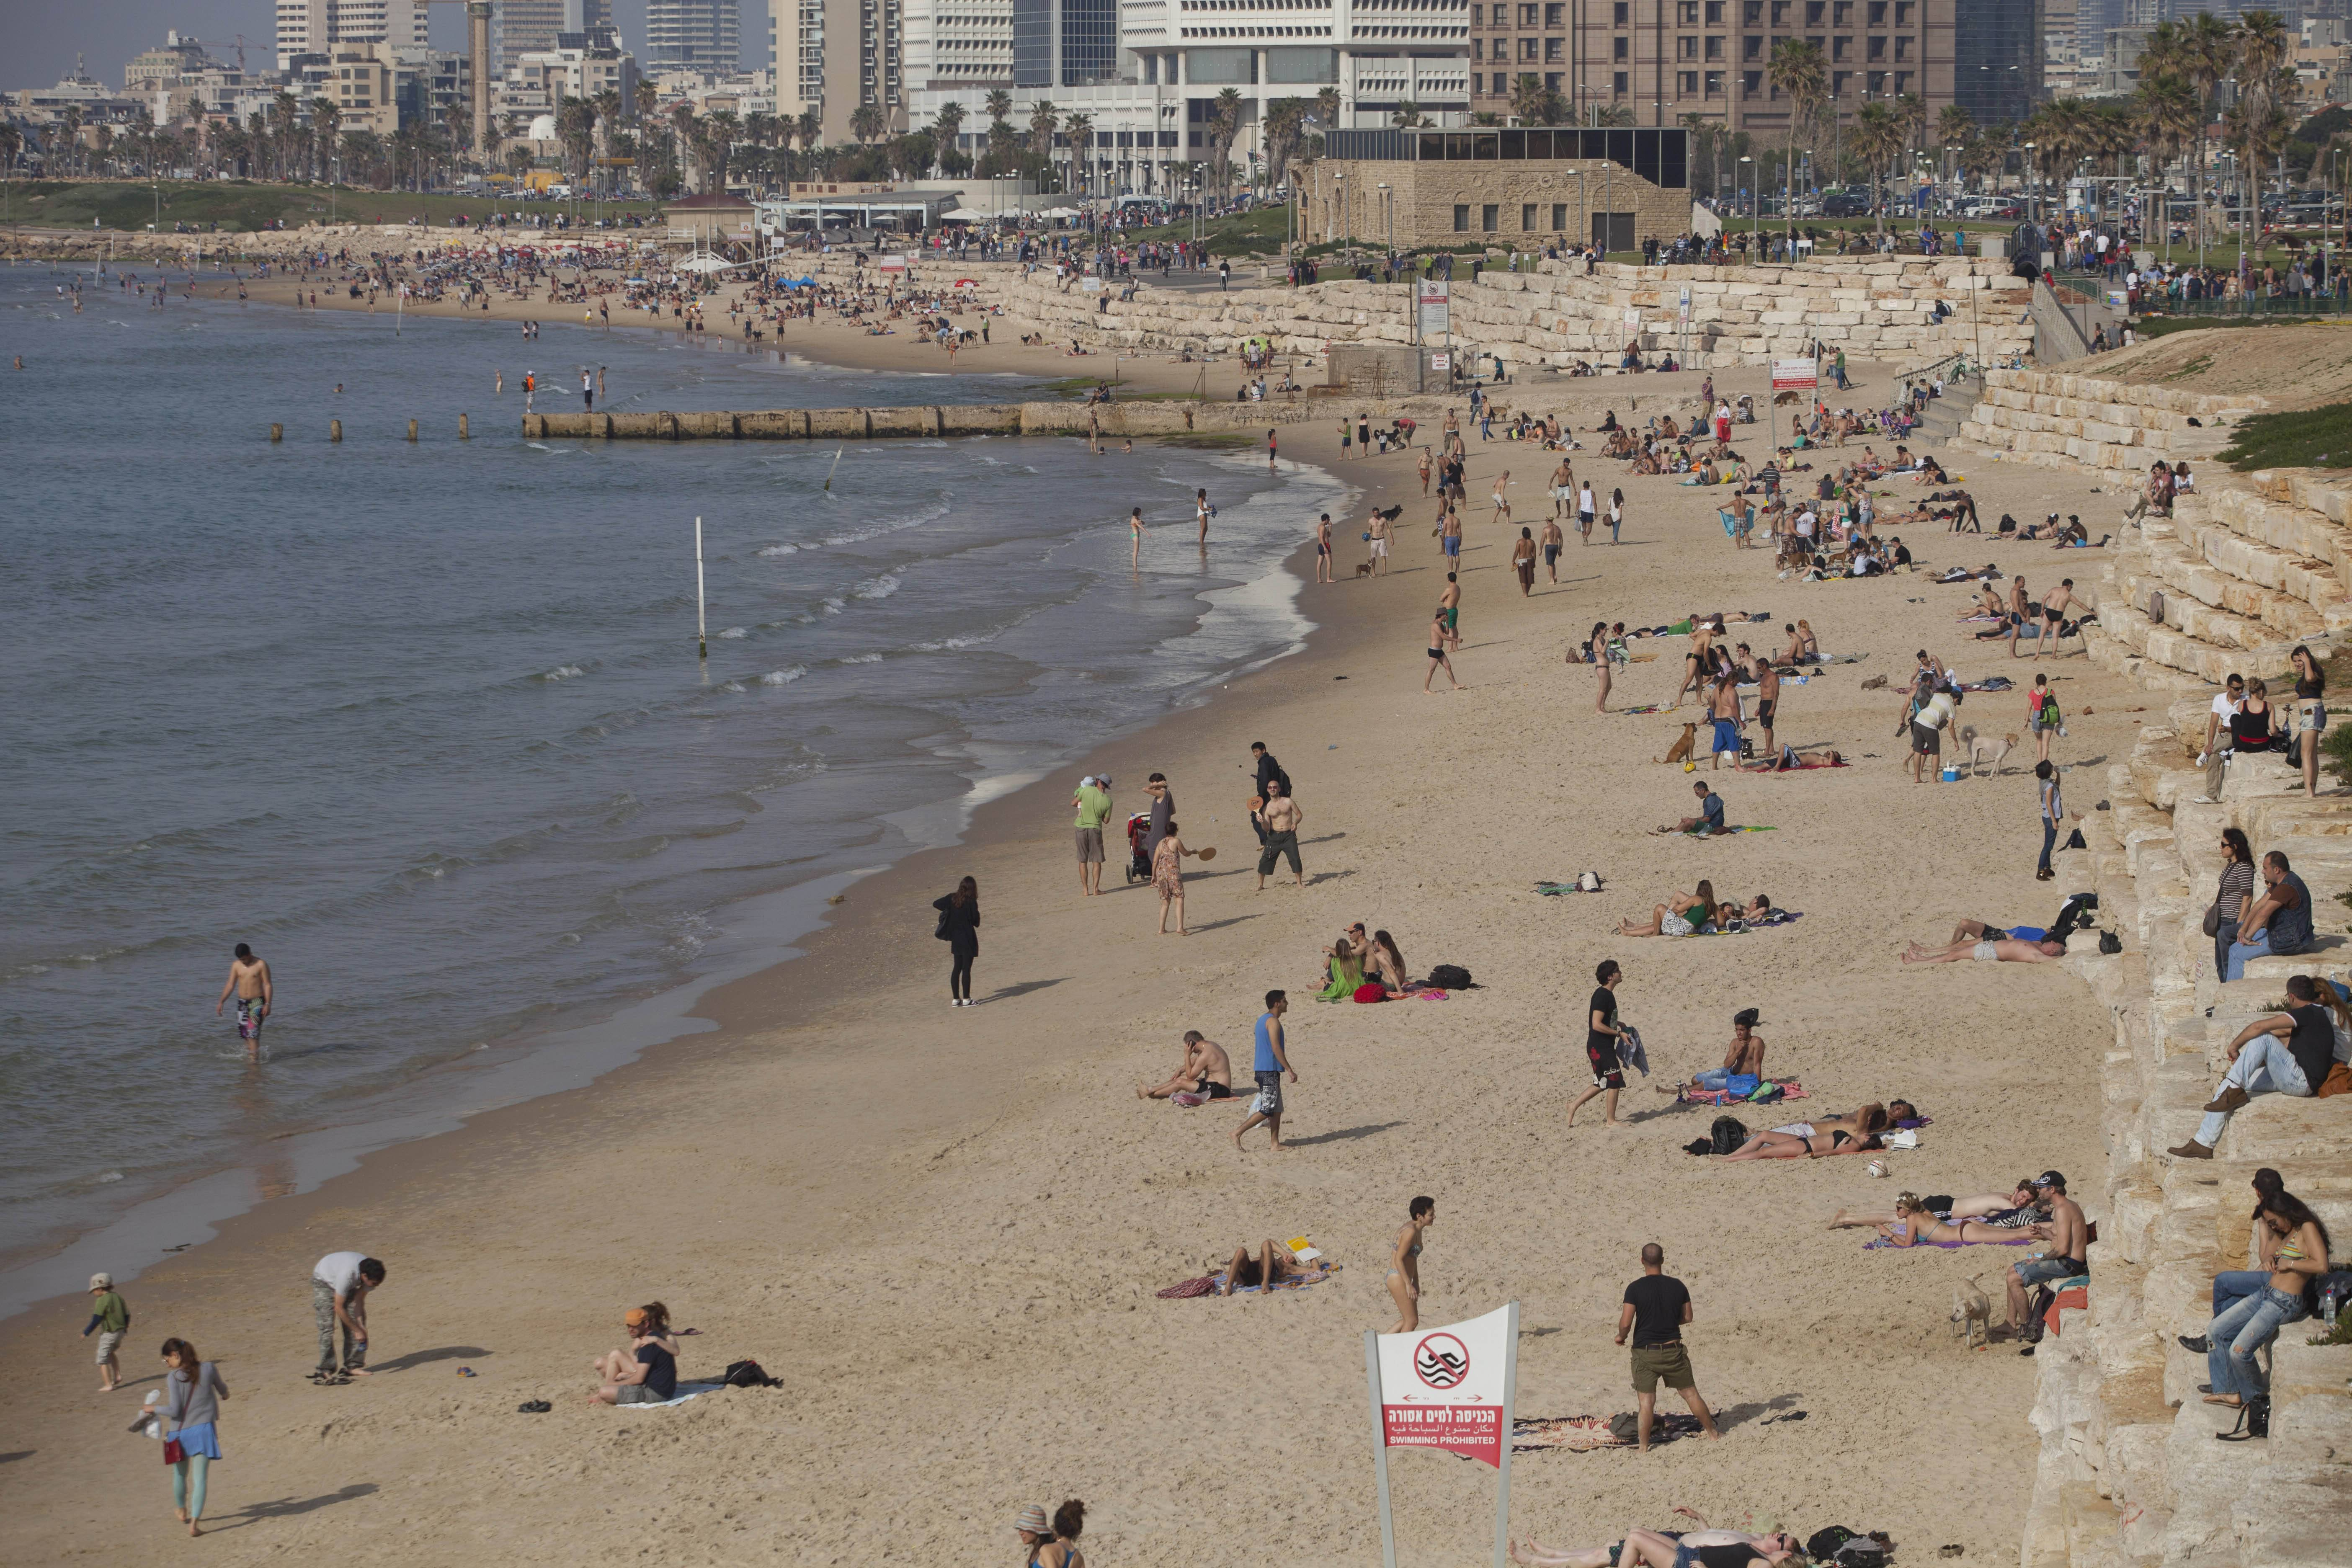 A dozen municipal beaches stretch out along 9 miles of coast in Tel Aviv, Israel, offering ample space for relaxing in the soft sand and dipping in the warm Mediterranean waters. Access is free and some offer extra amenities such as beach volleyball courts and outdoor exercise equipment.